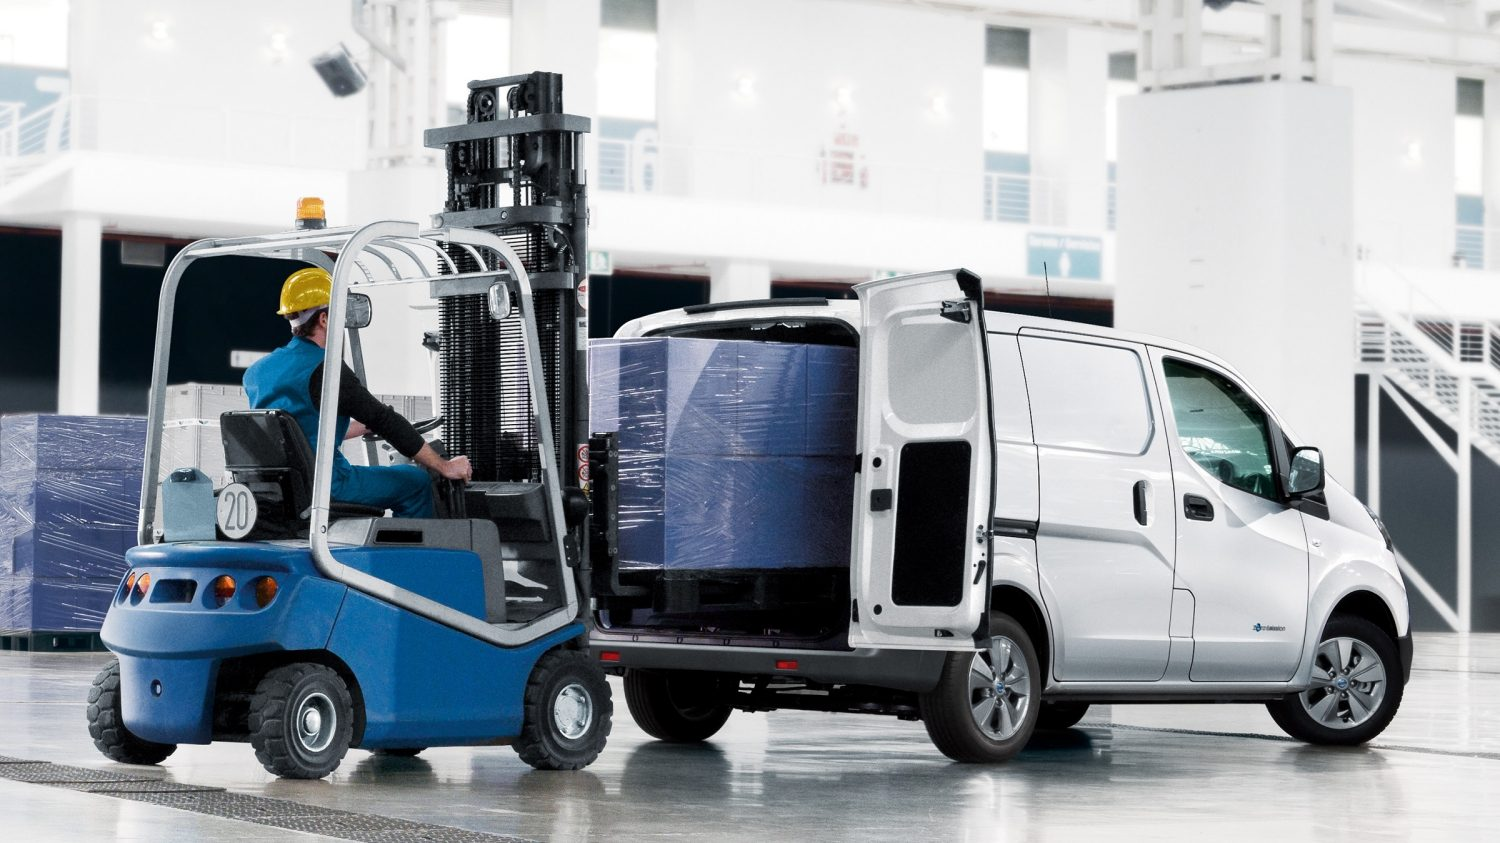 New Nissan e-NV200 VAN being loaded